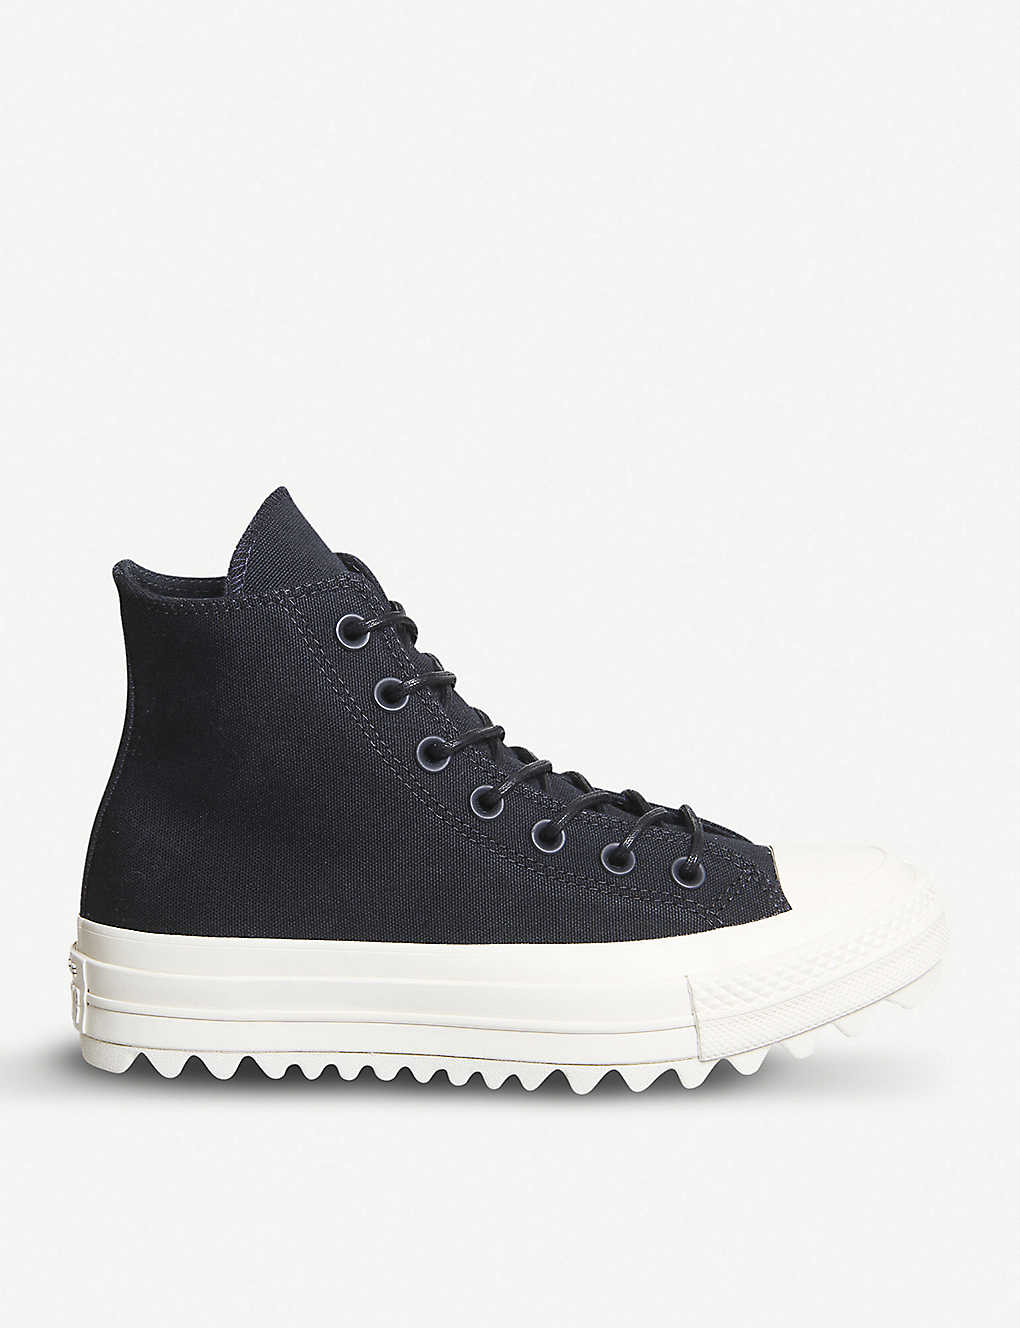 118066e5207 CONVERSE - Chuck Taylor All Star Lift Ripple canvas high-top ...